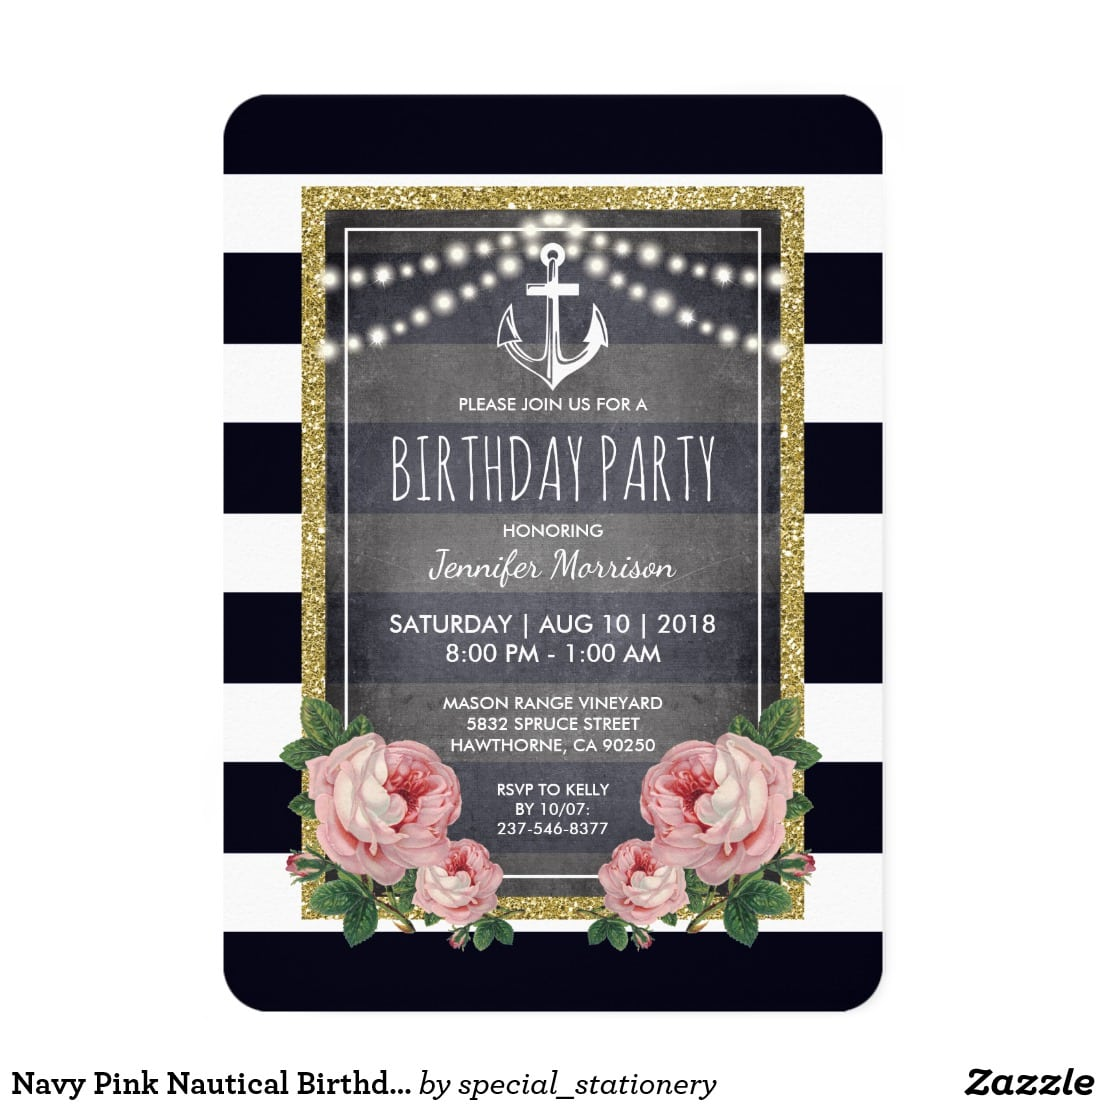 Navy Pink Nautical Birthday Party Card Pretty Nautical Themed